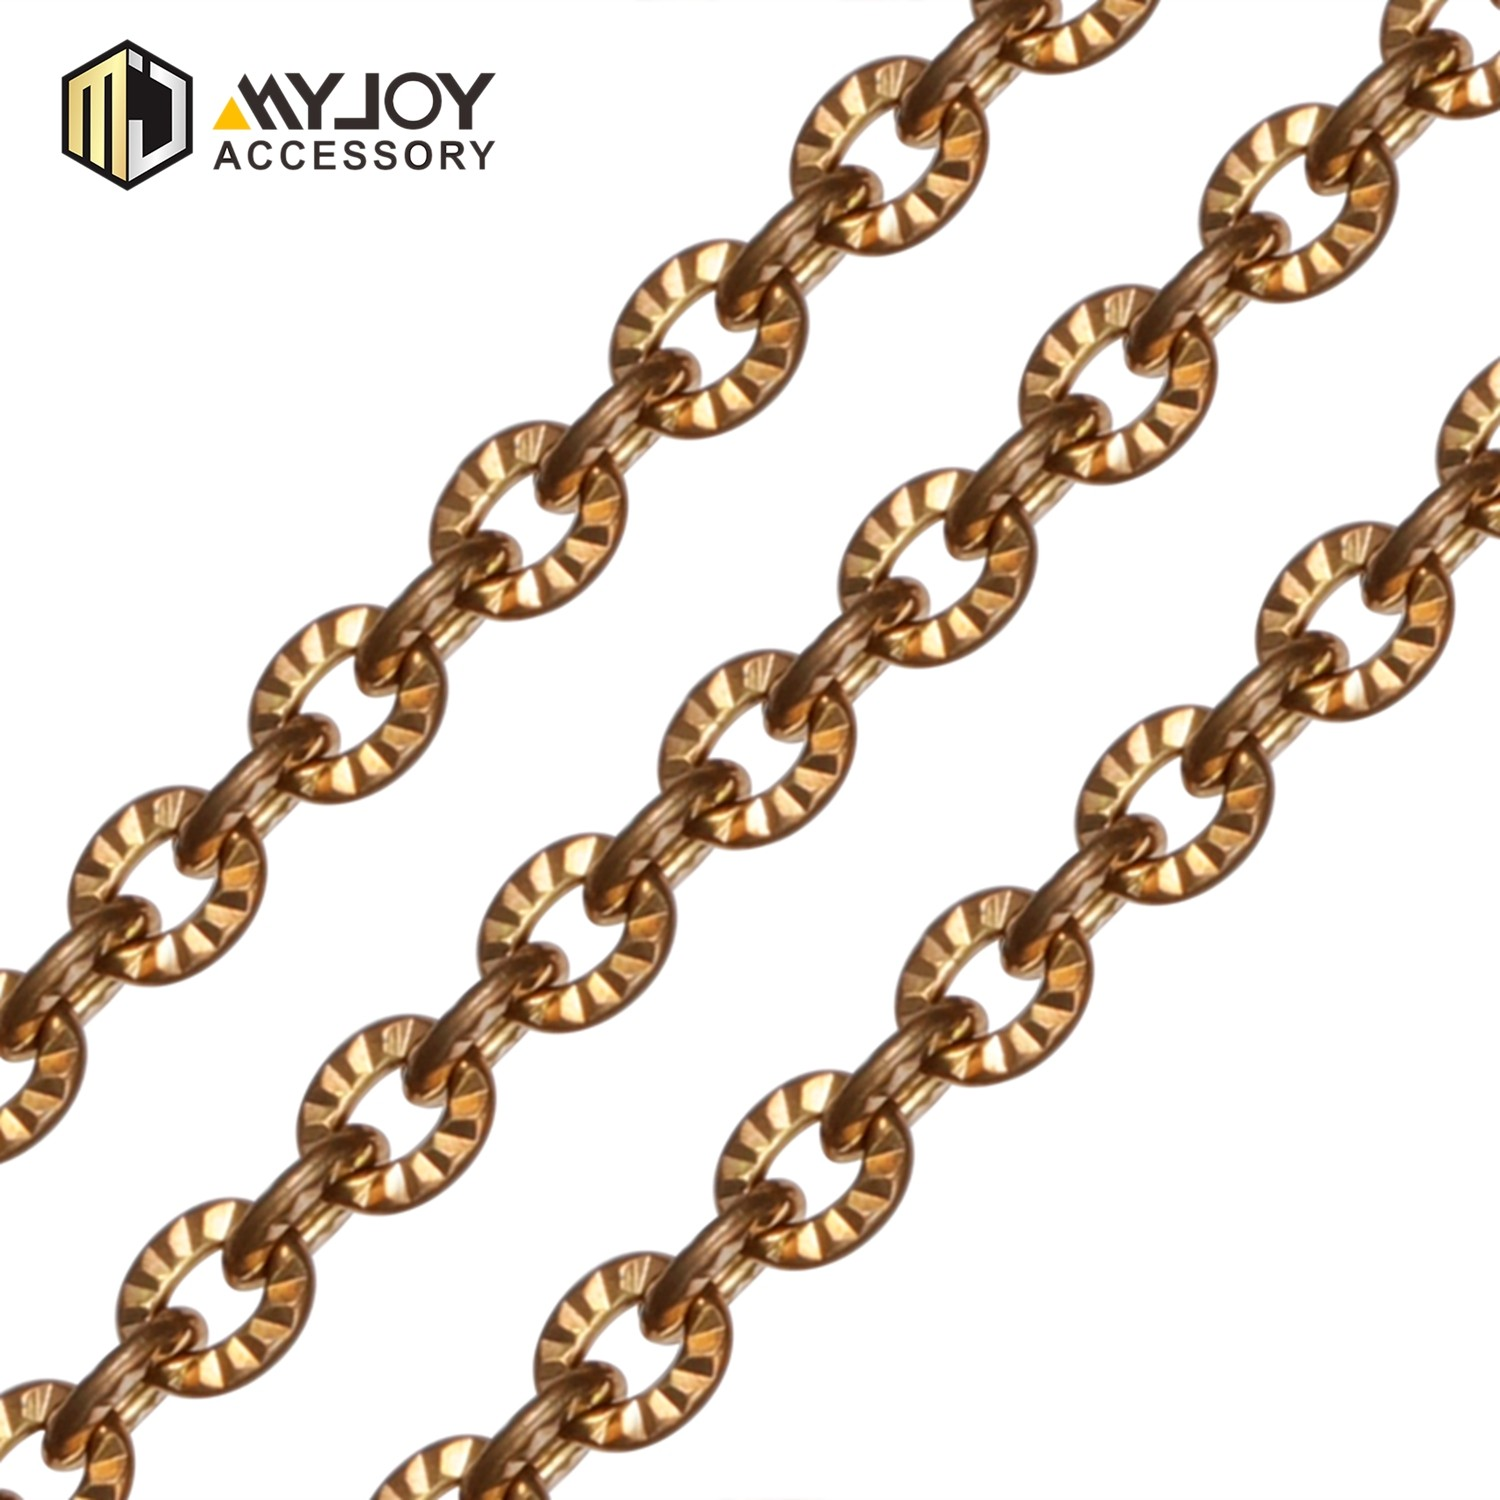 MYJOY Wholesale strap chain factory for bags-3